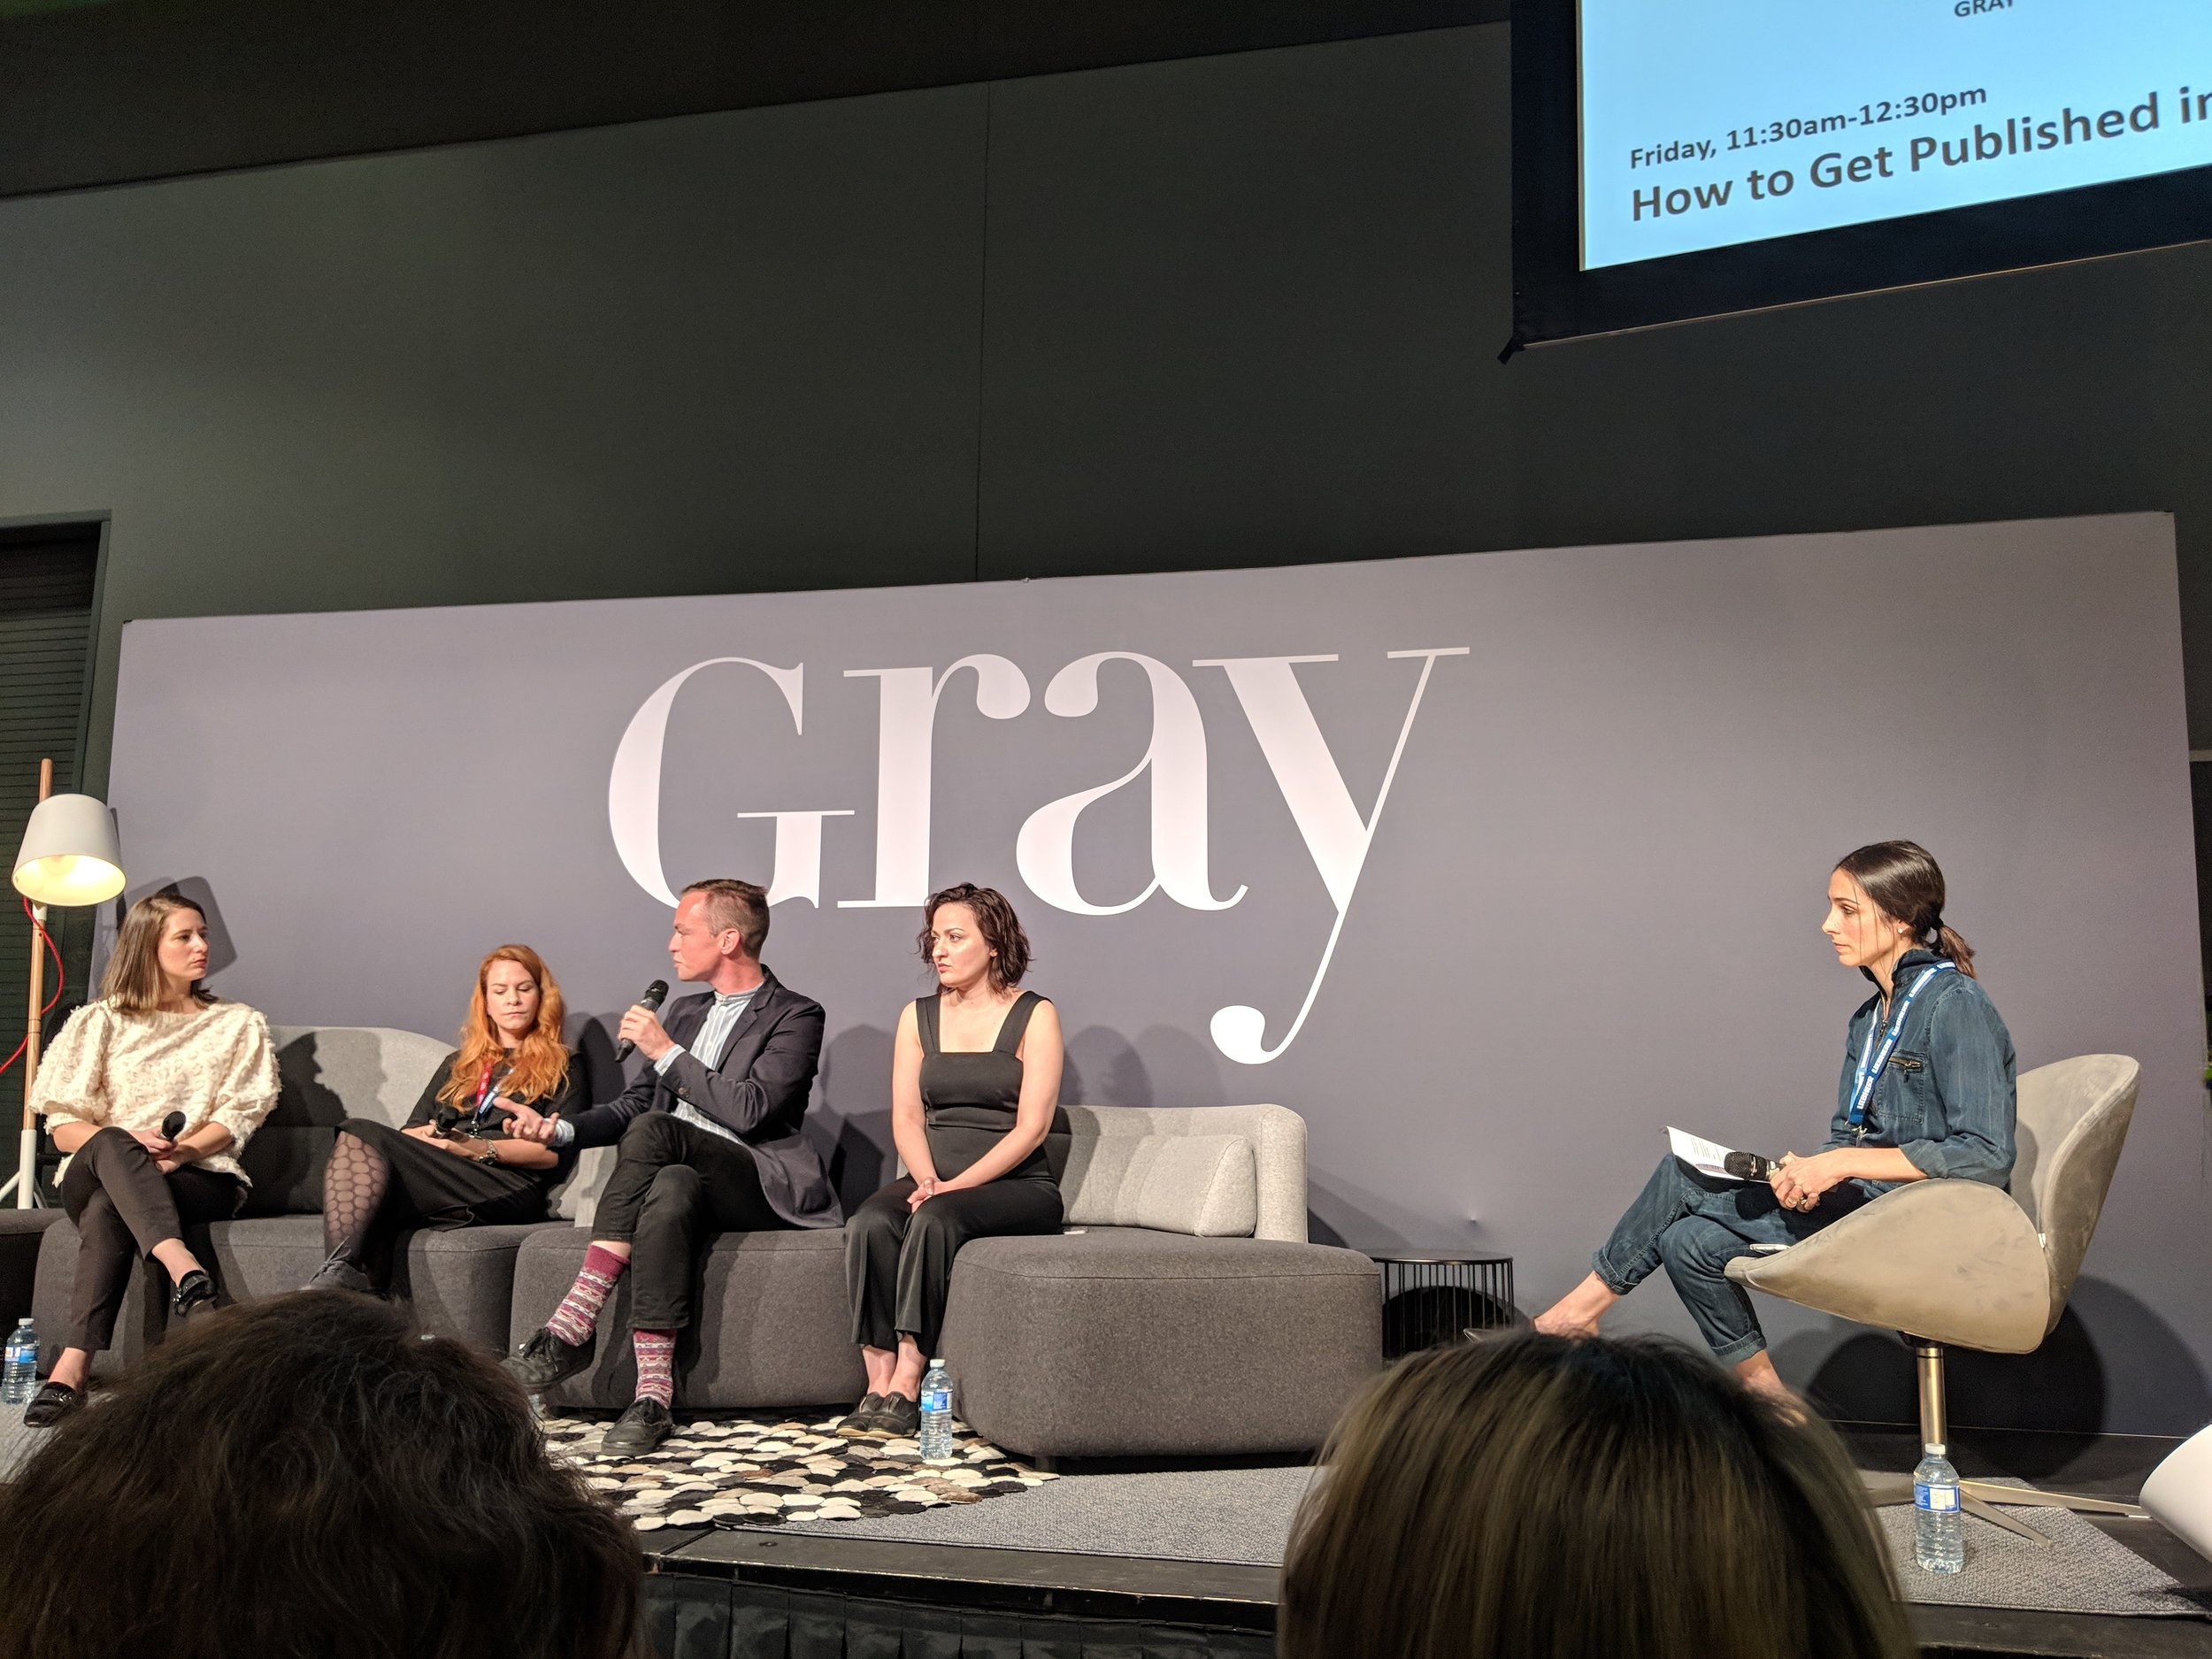 How to Get Published in 2018 on the Gray stage